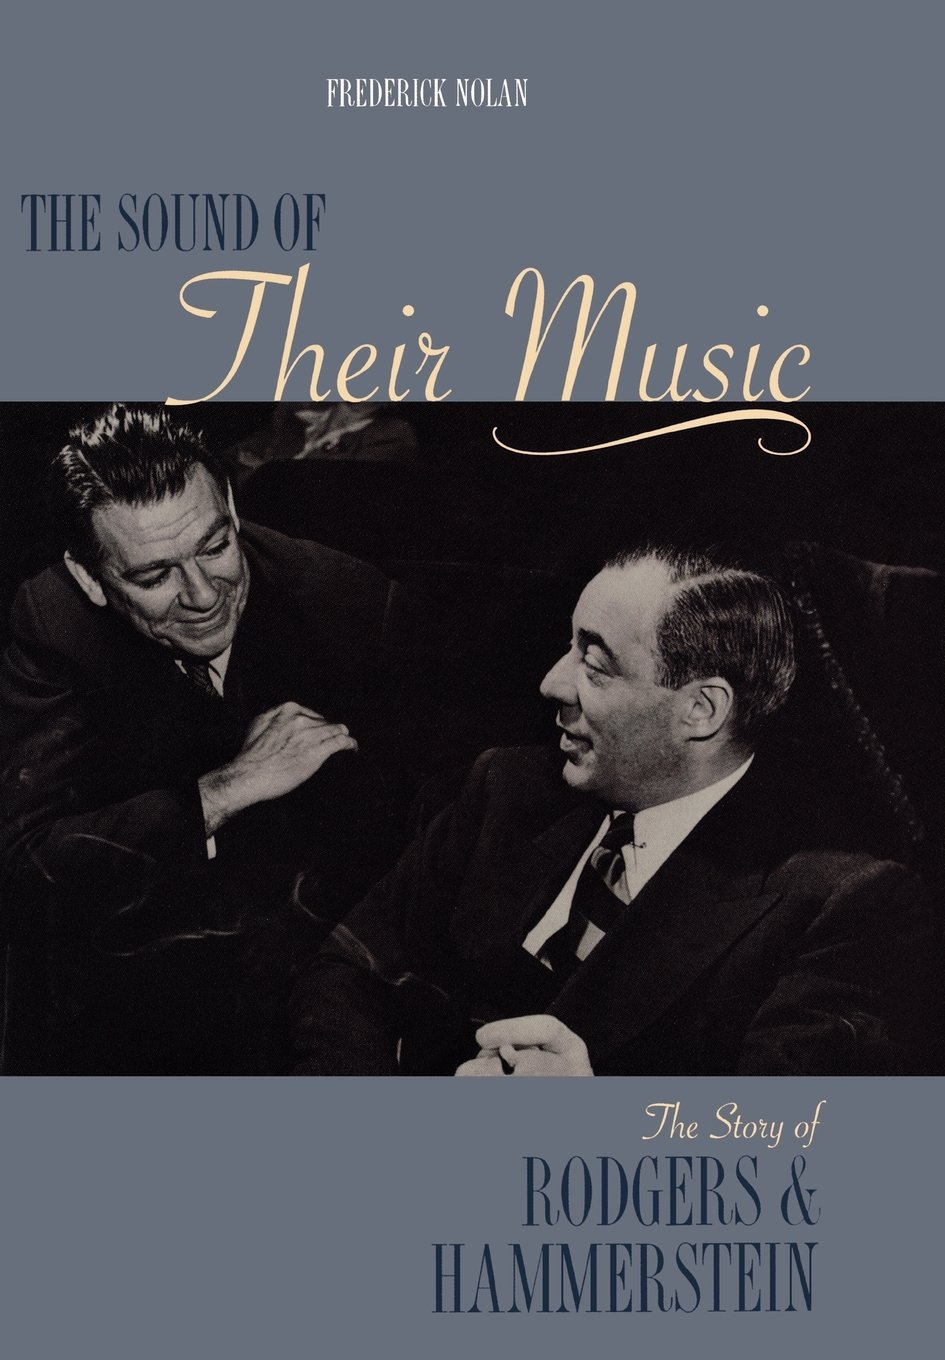 The Sound of Their Music: The Story of Rodgers & Hammerstein